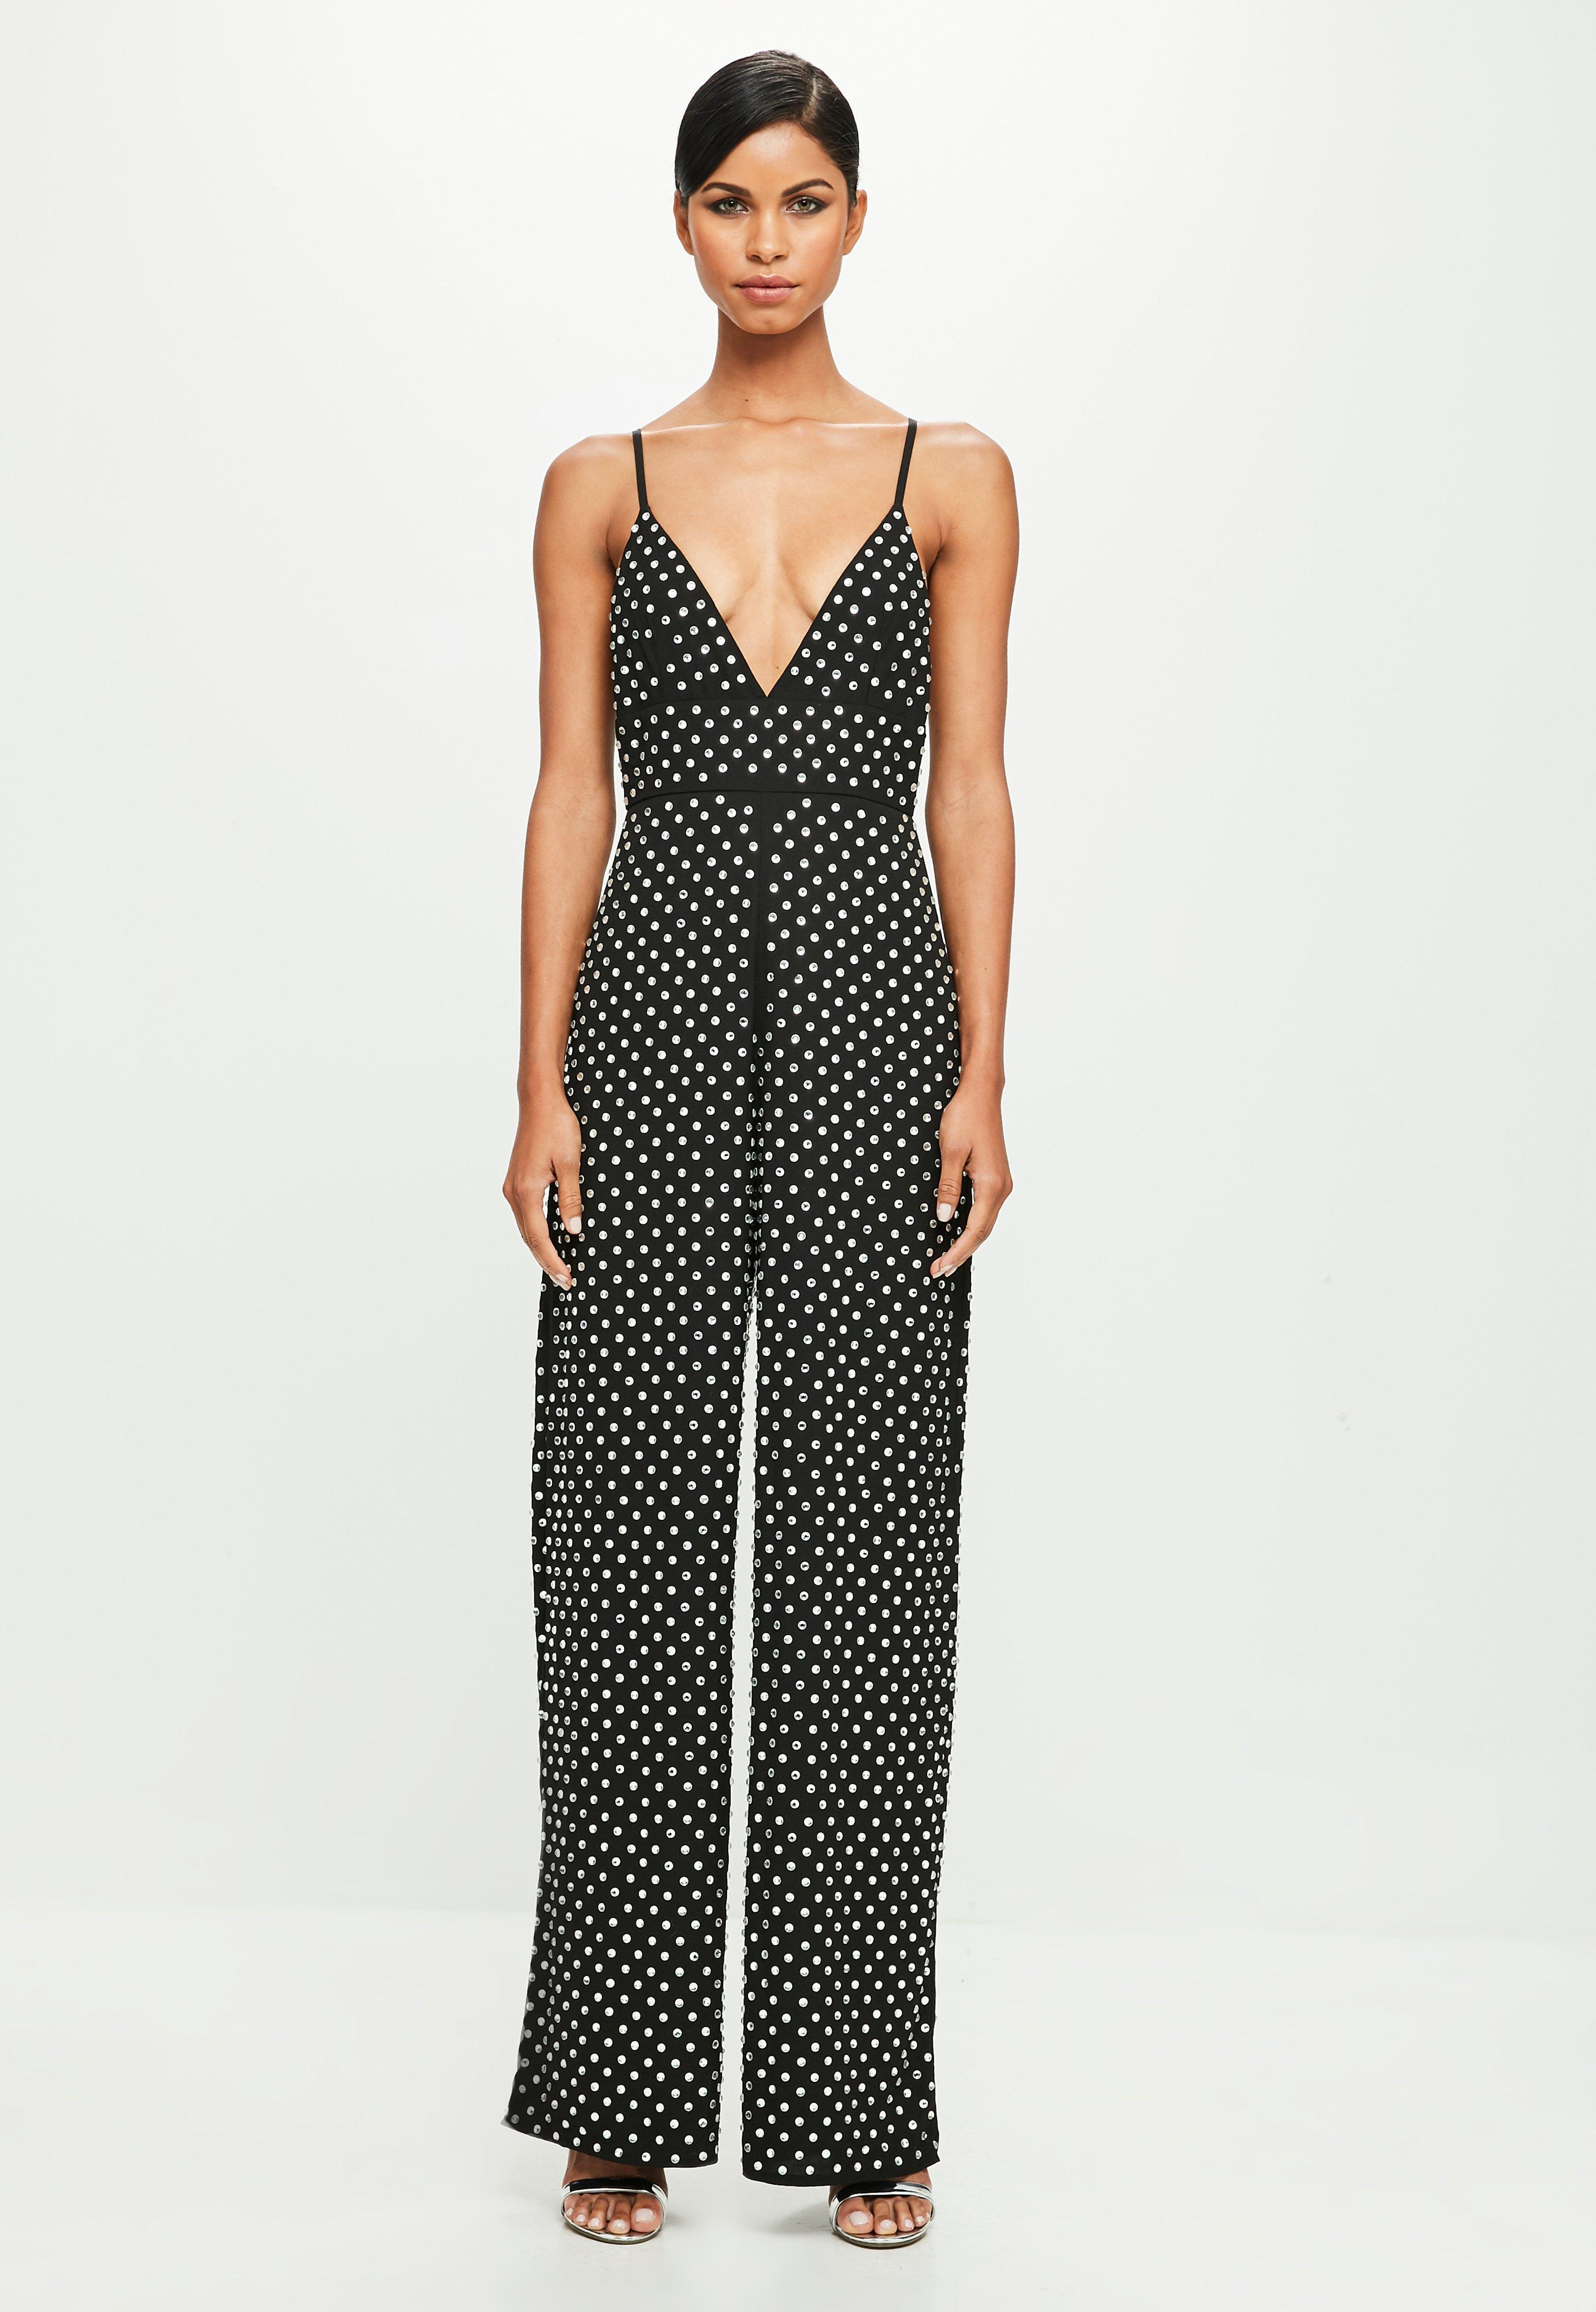 3a1798bff962 Missguided Peace + Love Black Strappy Hotfix Flared Jumpsuit in ...